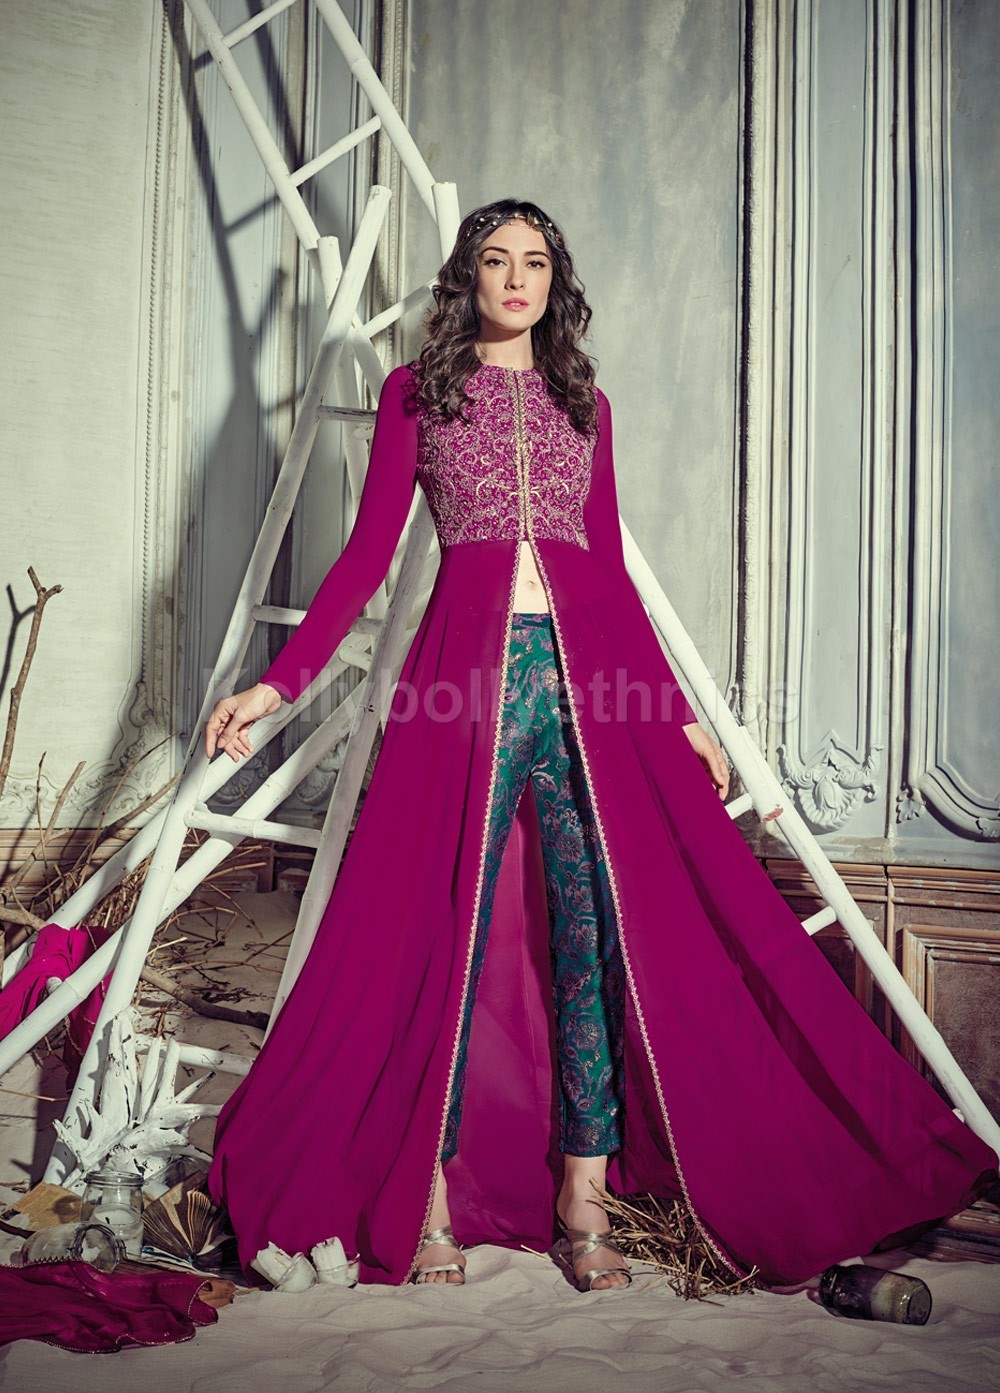 Stunning Rani Pink Color Georgette Pant Style Party Wear Salwar Kameez